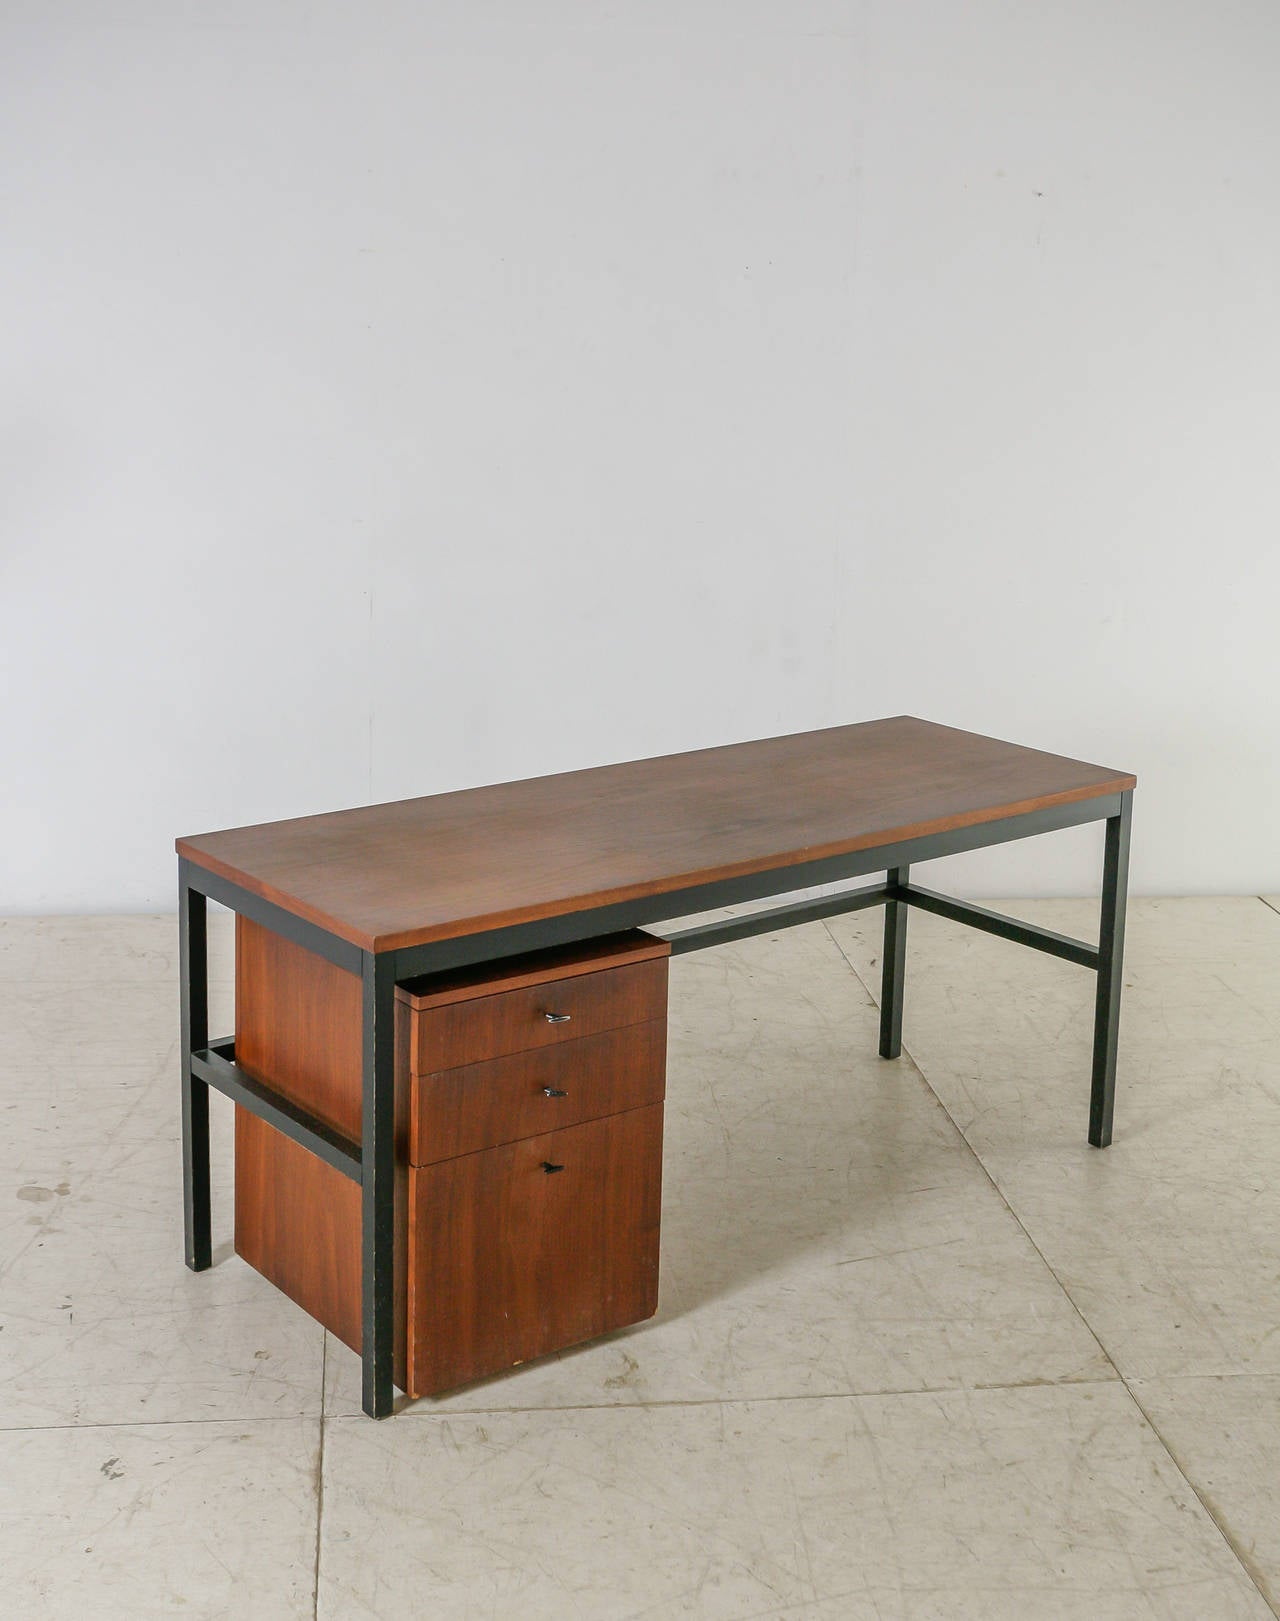 Mid-Century Modern Milo Baughman for Directional Desk Annex Console Table, USA, 1960s For Sale